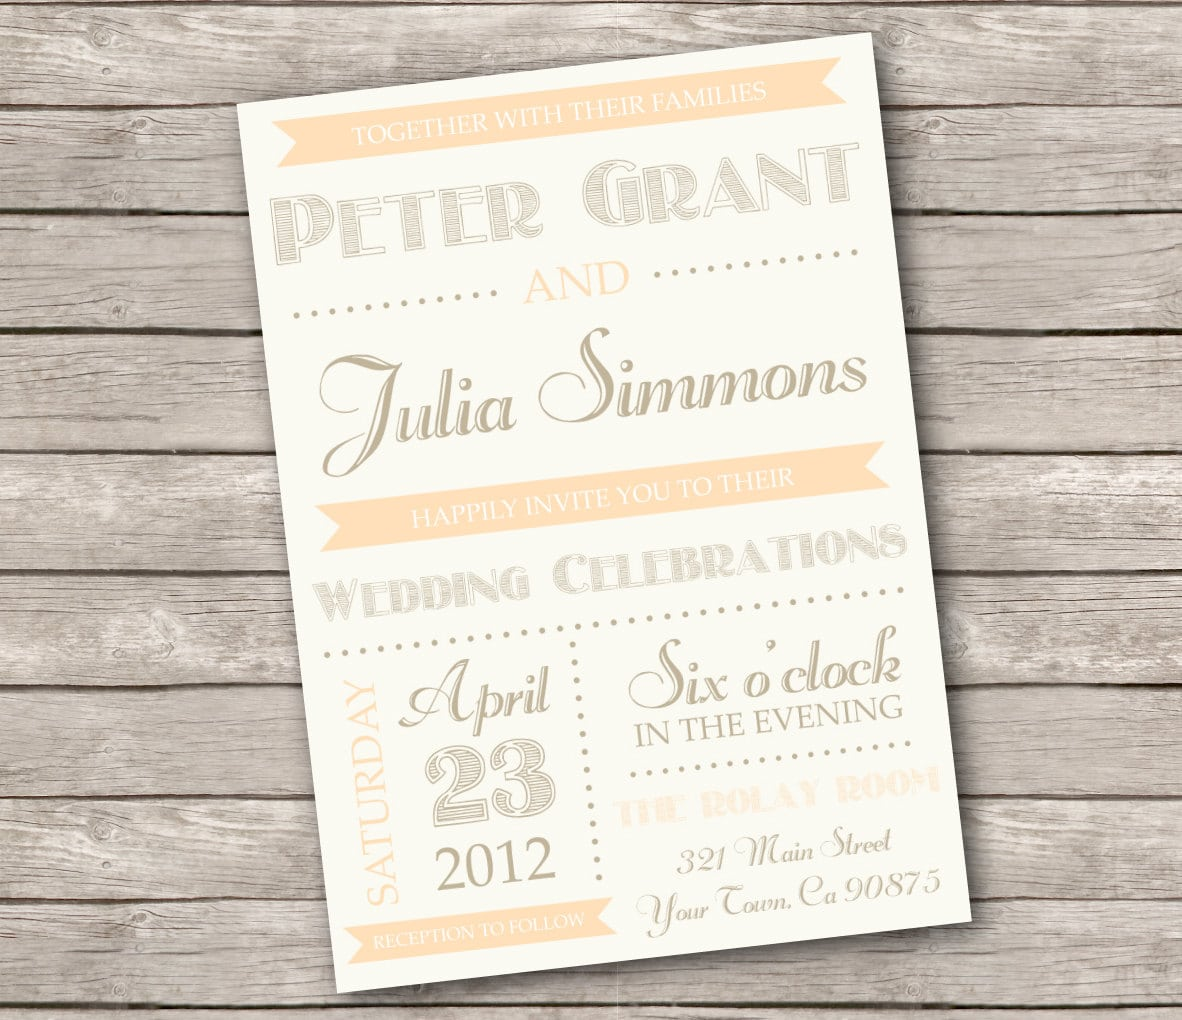 Rustic Country Wedding Invitation Templates